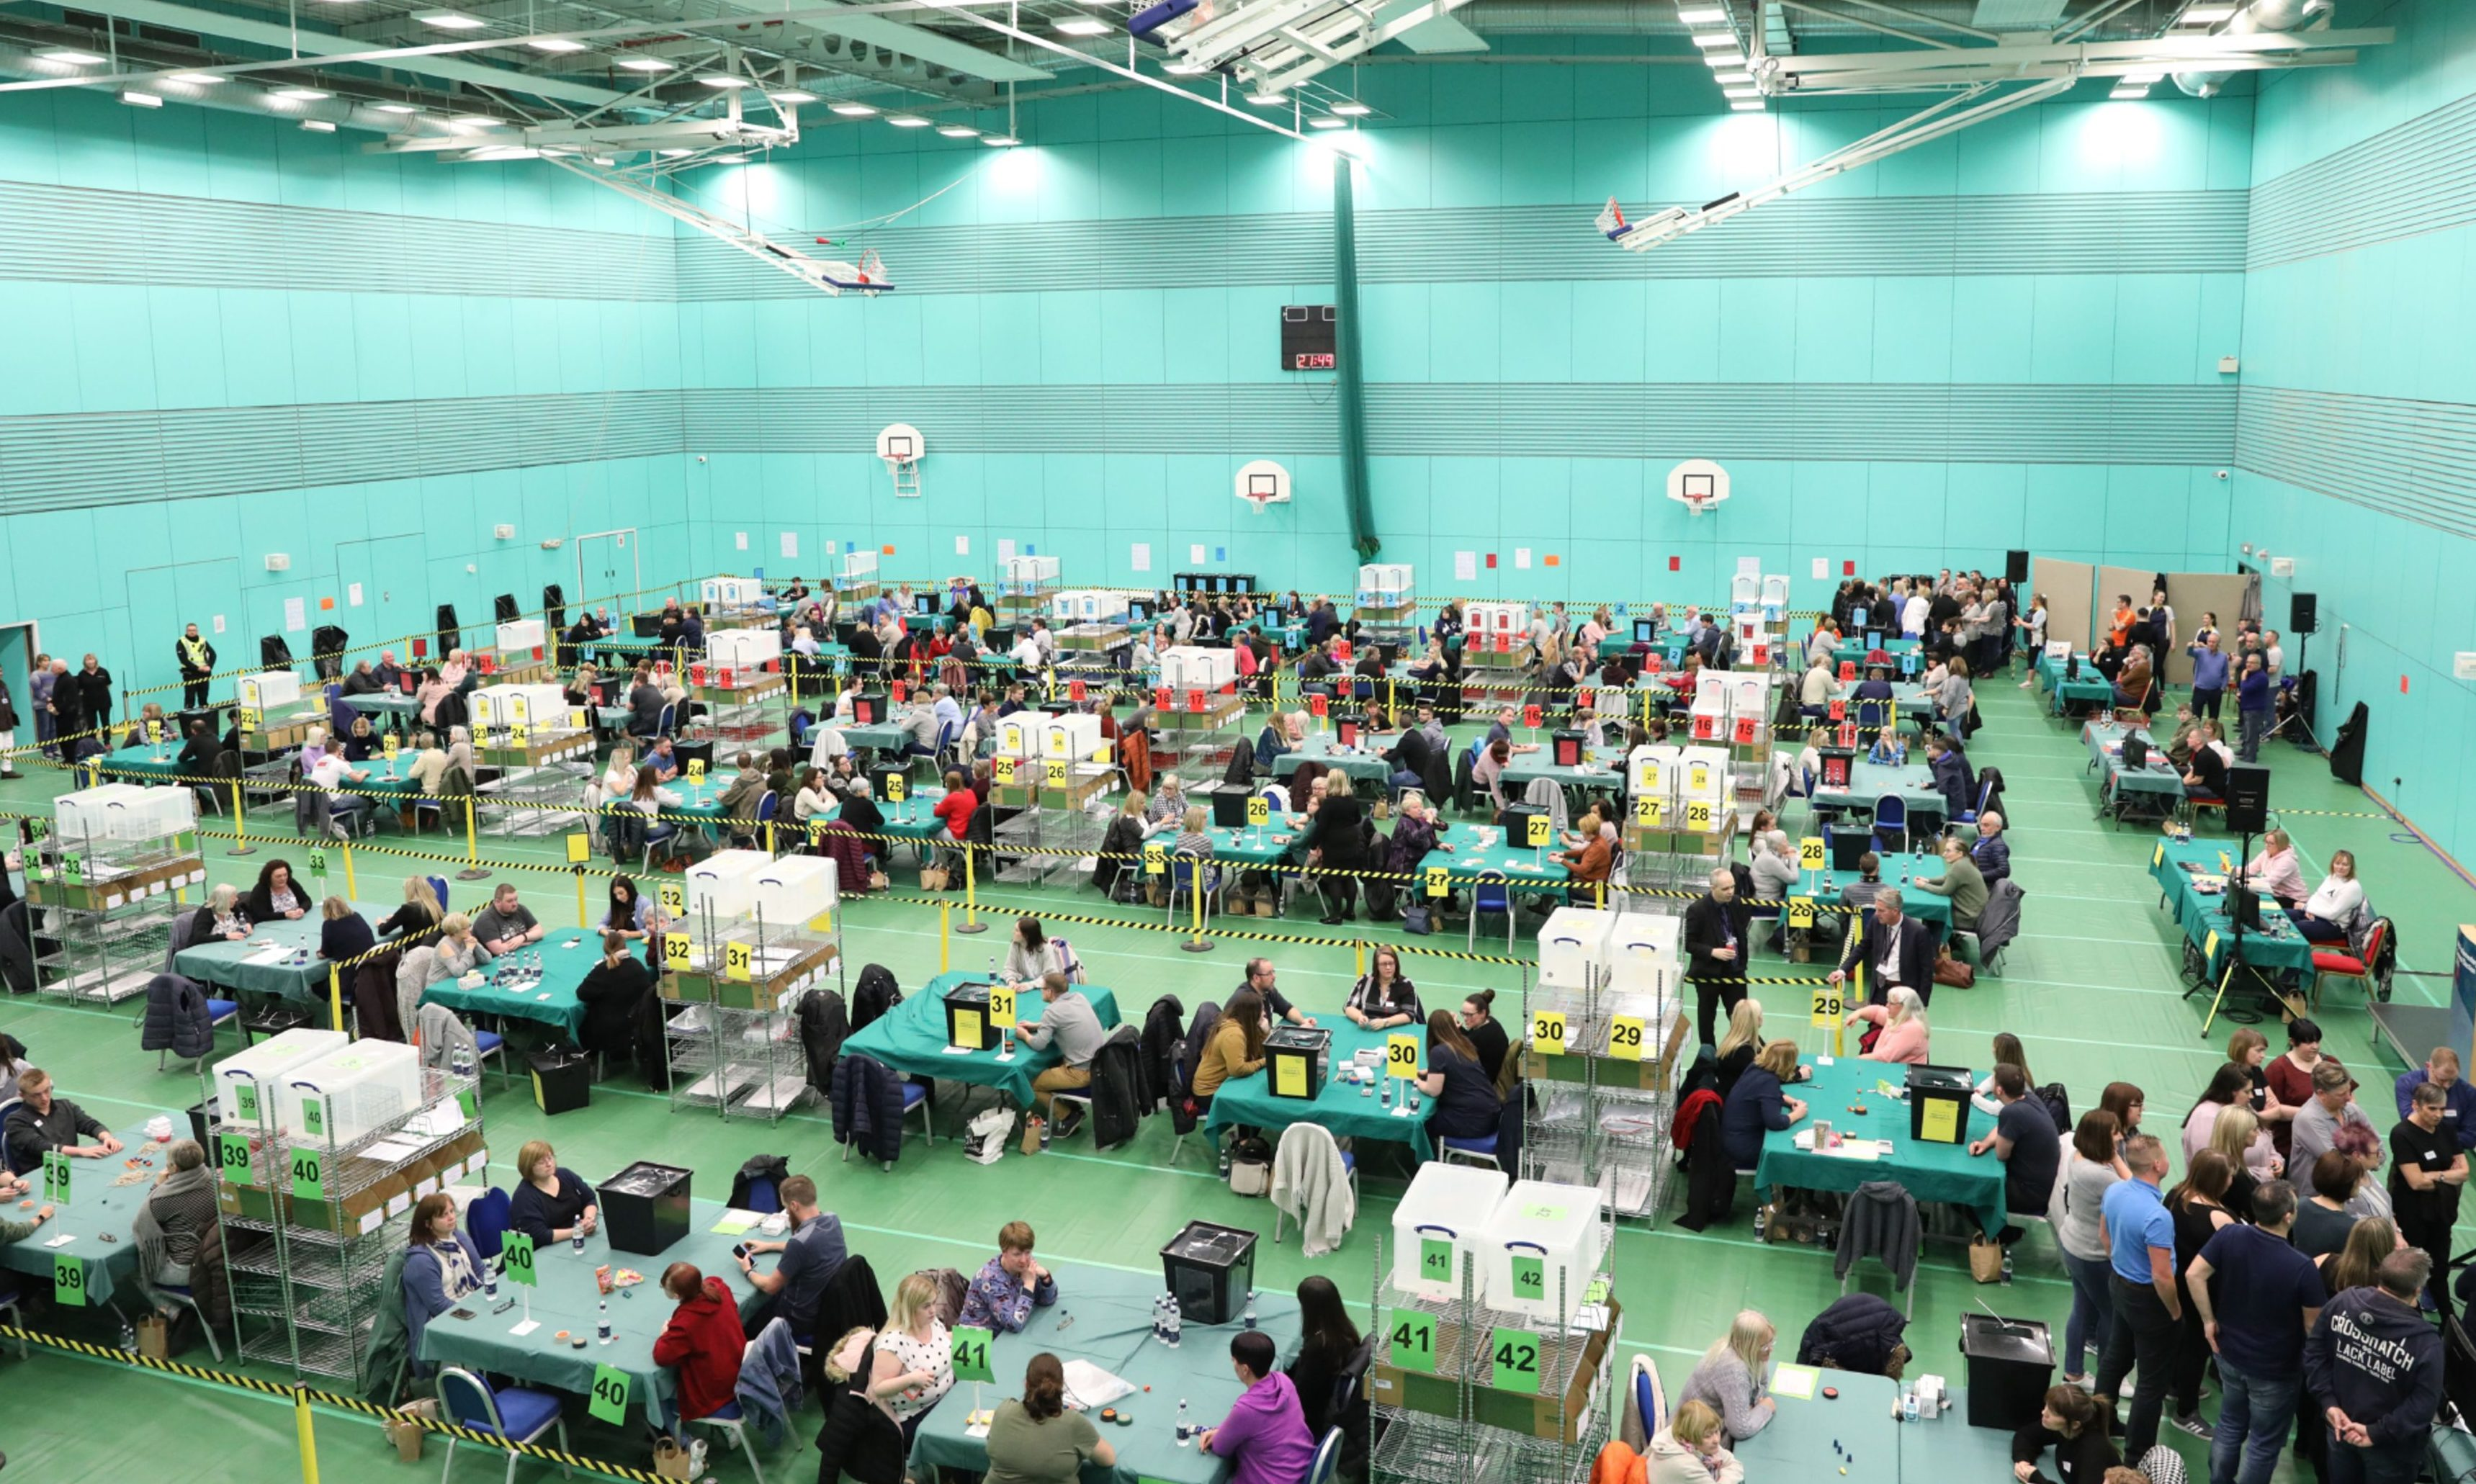 The Glenrothes count.